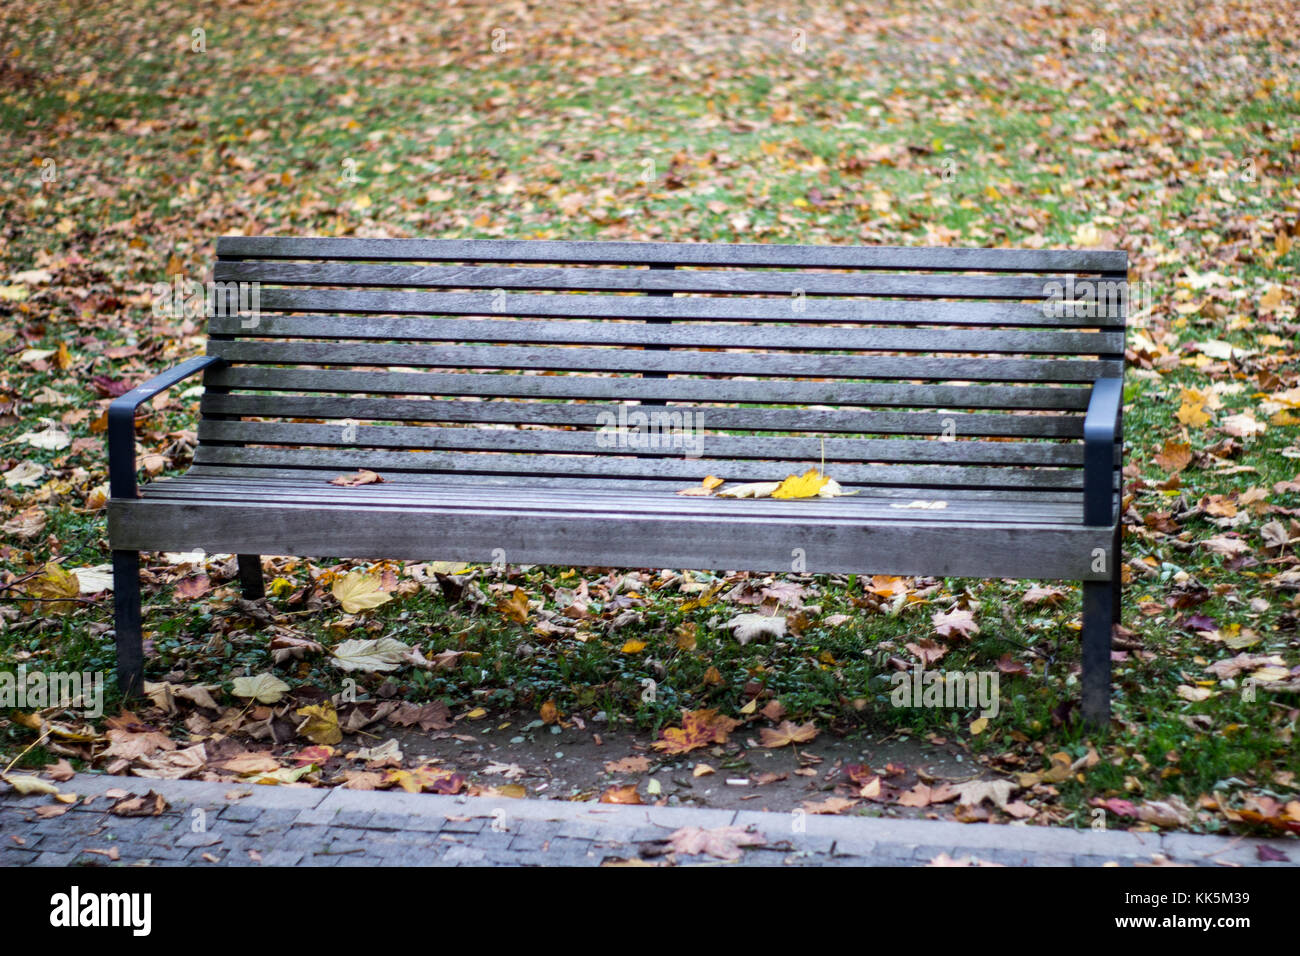 empty bench on an autumn scenery park with yellow leaves on the ground - Stock Image